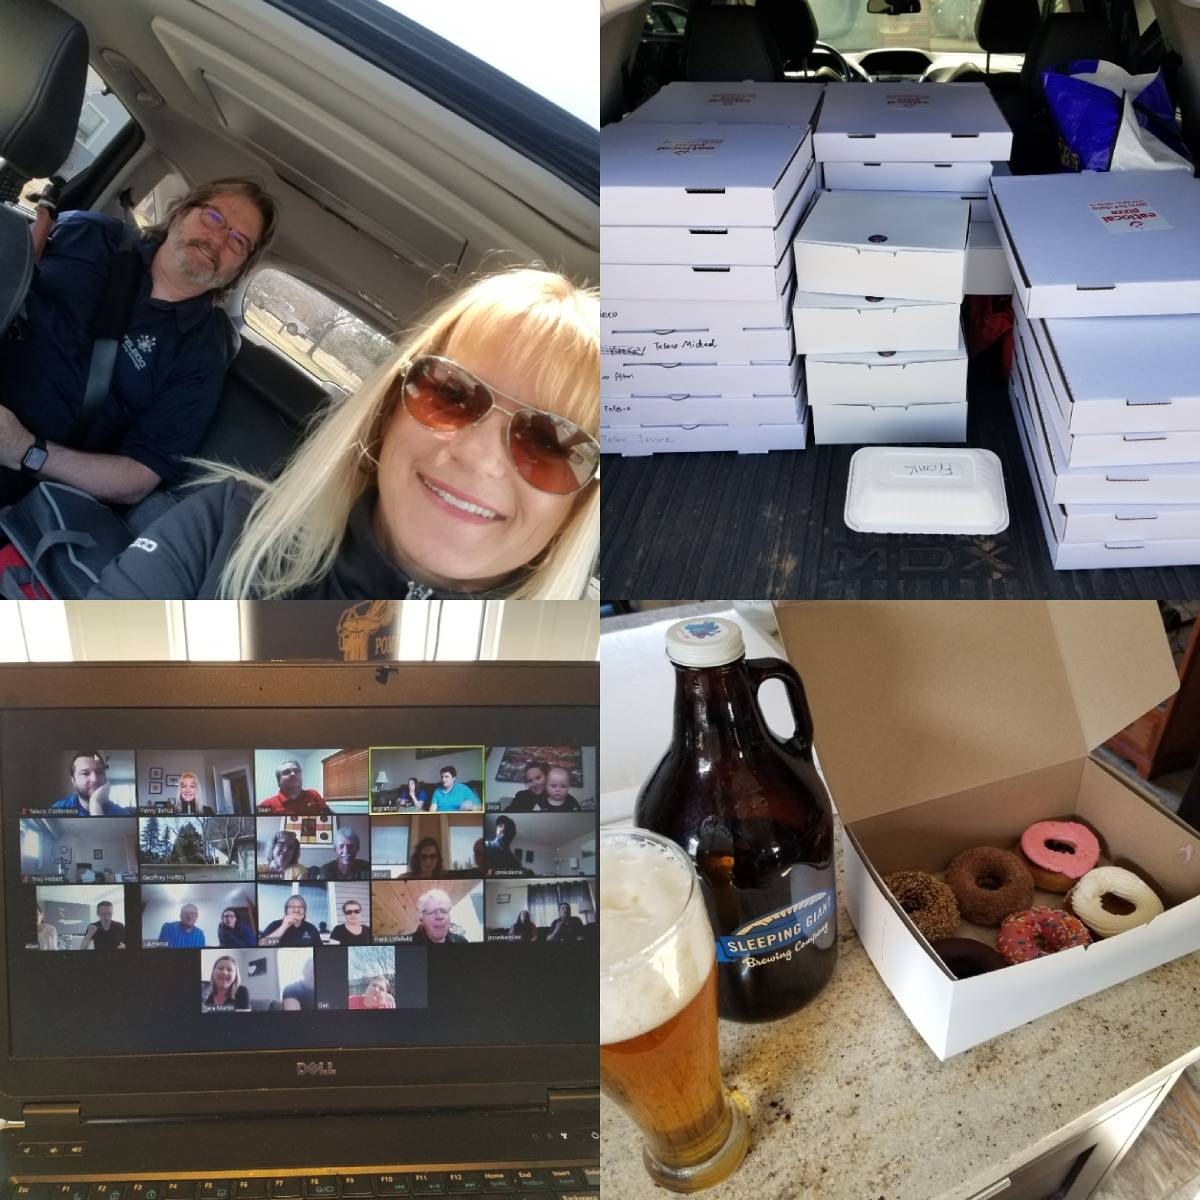 Four image display of a smiling blond woman, pizza, a video chat with many people, and donuts and beer.